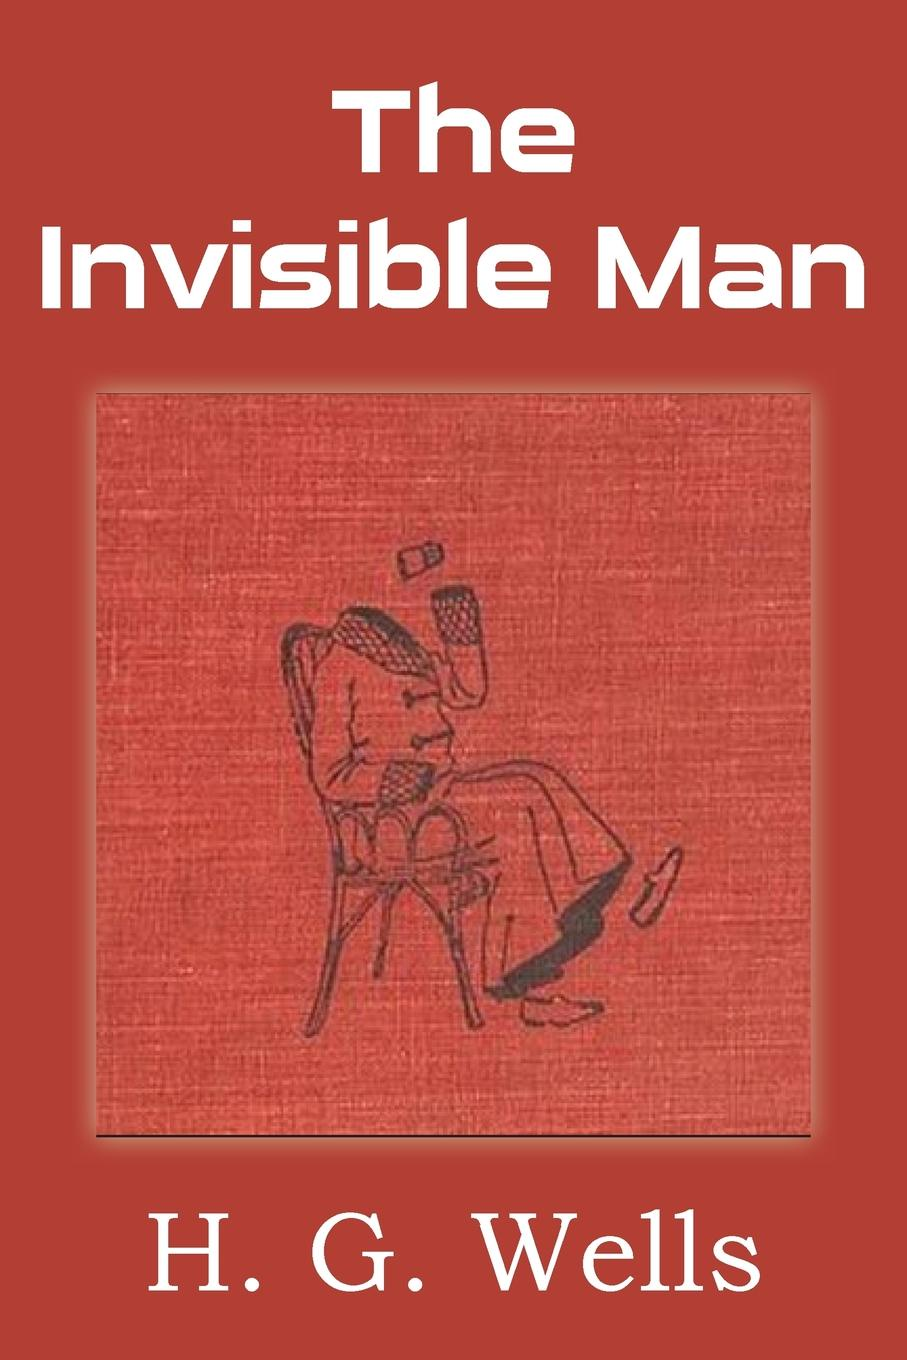 H. G. Wells The Invisible Man h g wells the invisible man